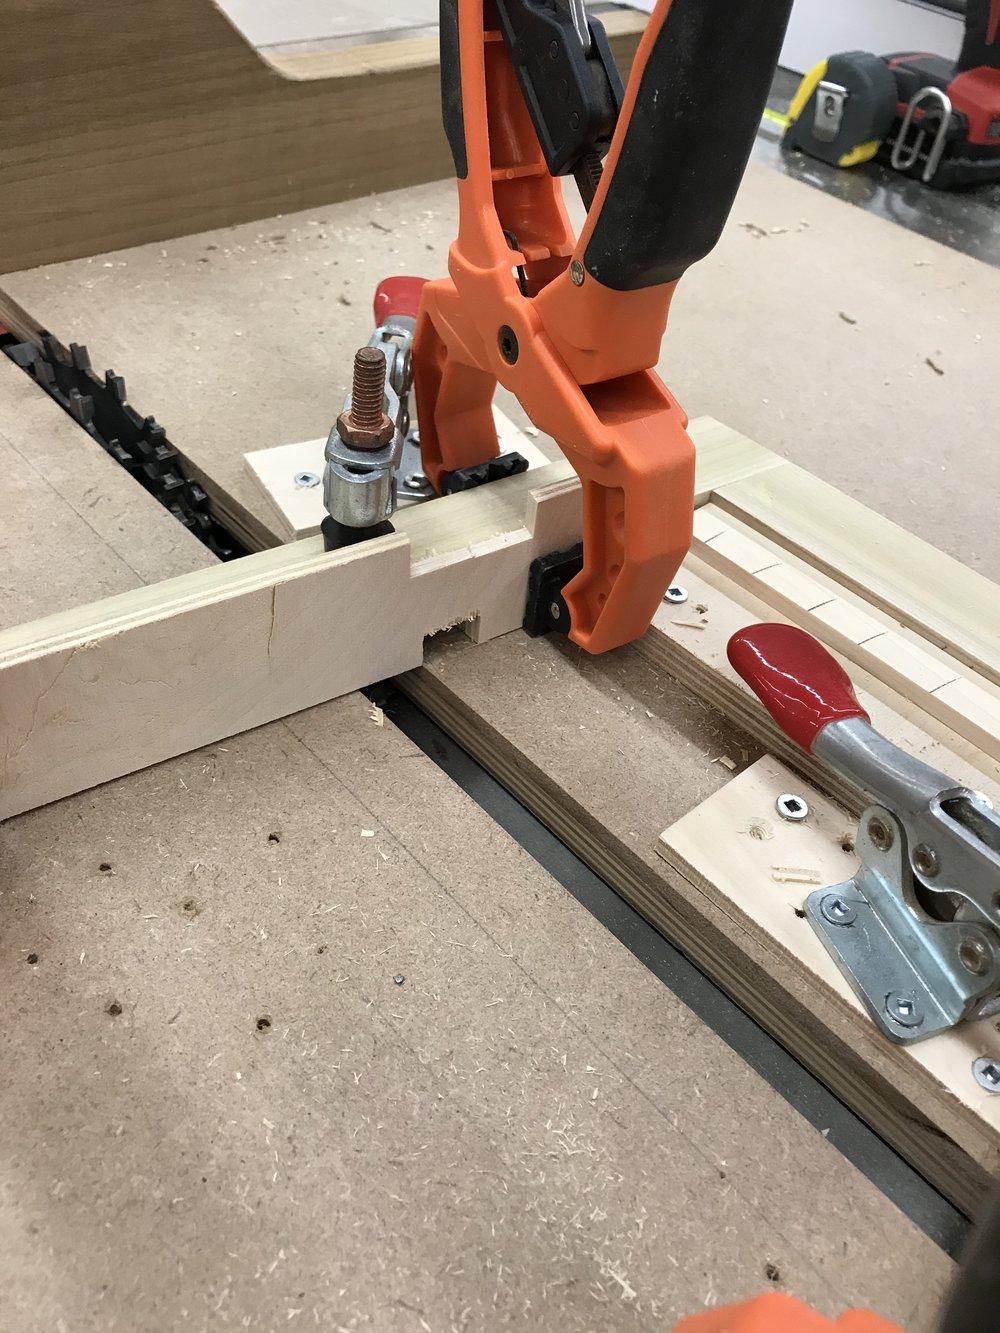 After a first pass, I shift the piece over like in the photo above to finish the cut at my final width. The orange clamps keep a backing to the cut, minimizing tear-out on my pieces as the blade exits.